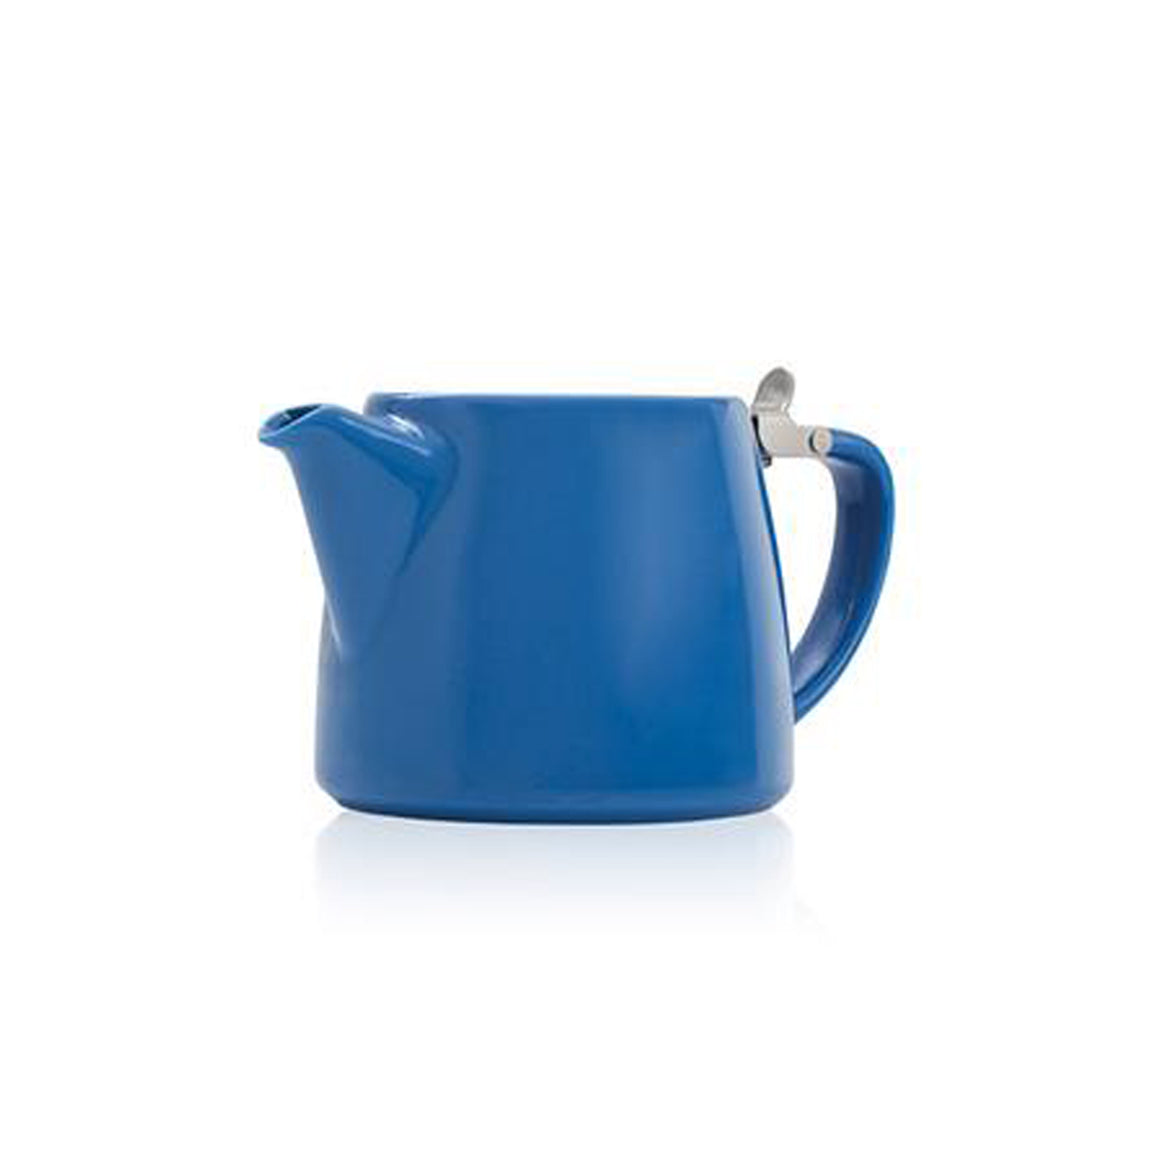 Forlife Blue Stump Teapot 18oz